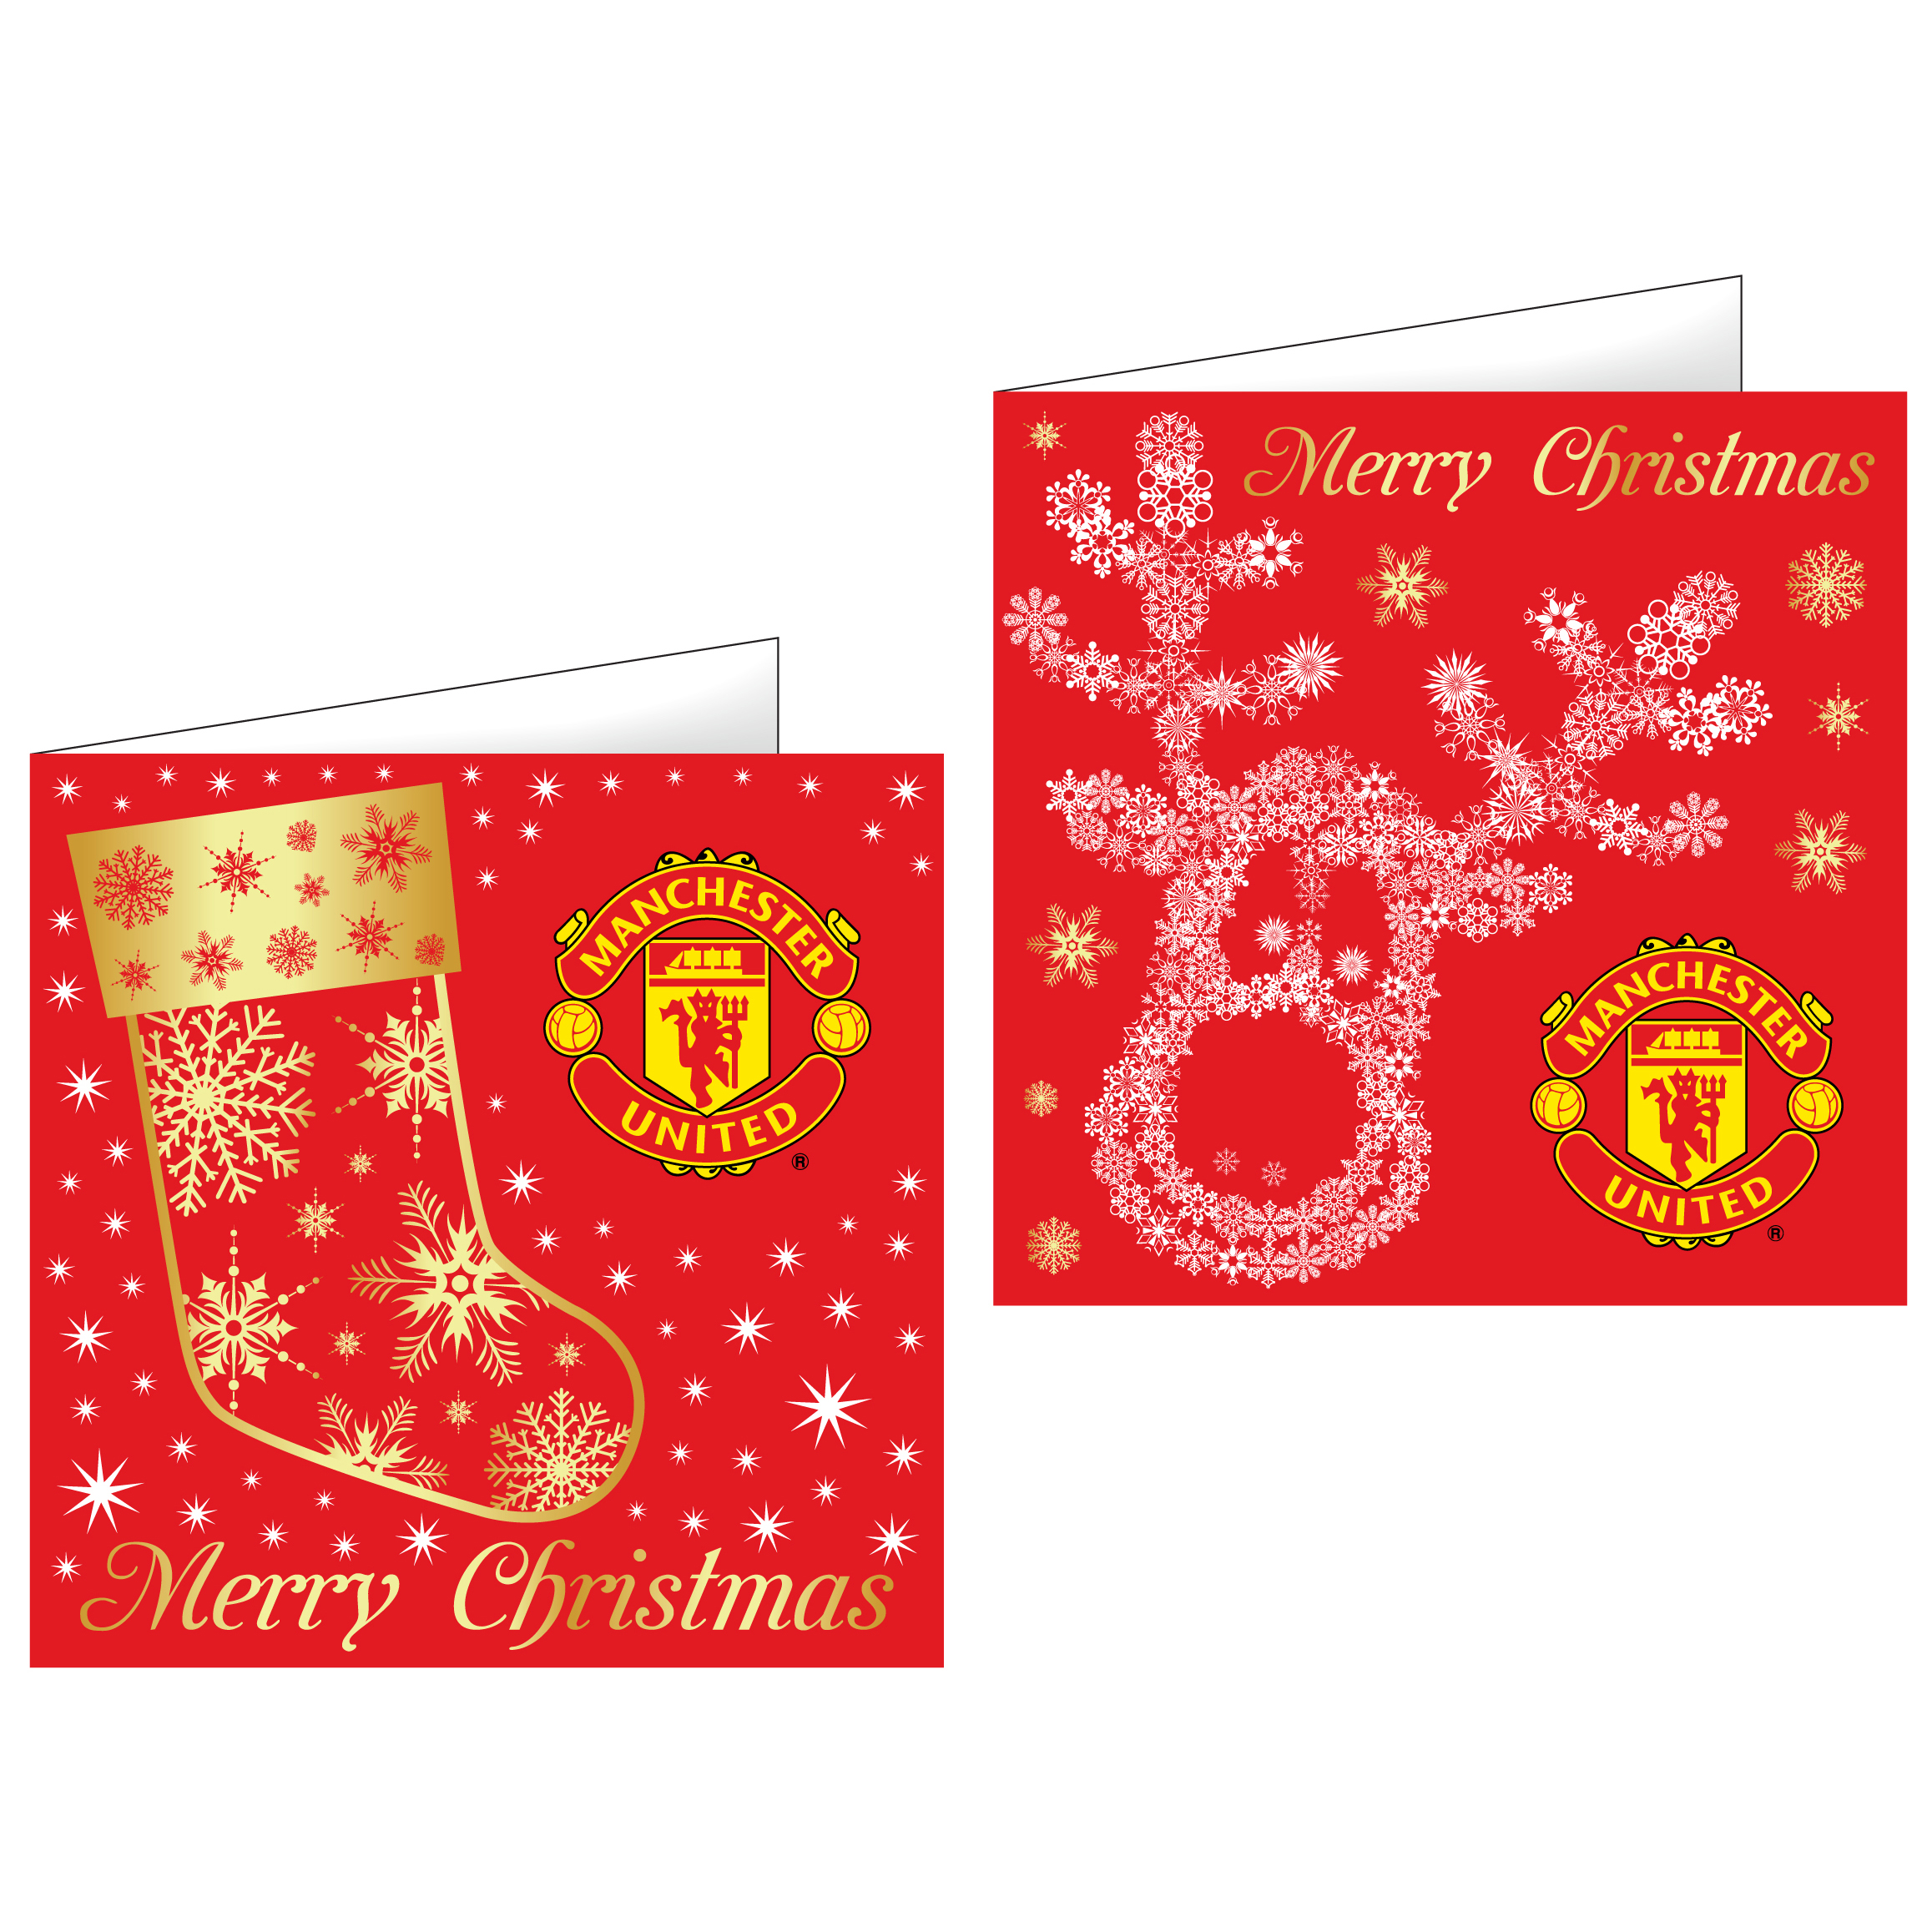 Manchester United Christmas Foiled Greeting Cards - 10 Pack